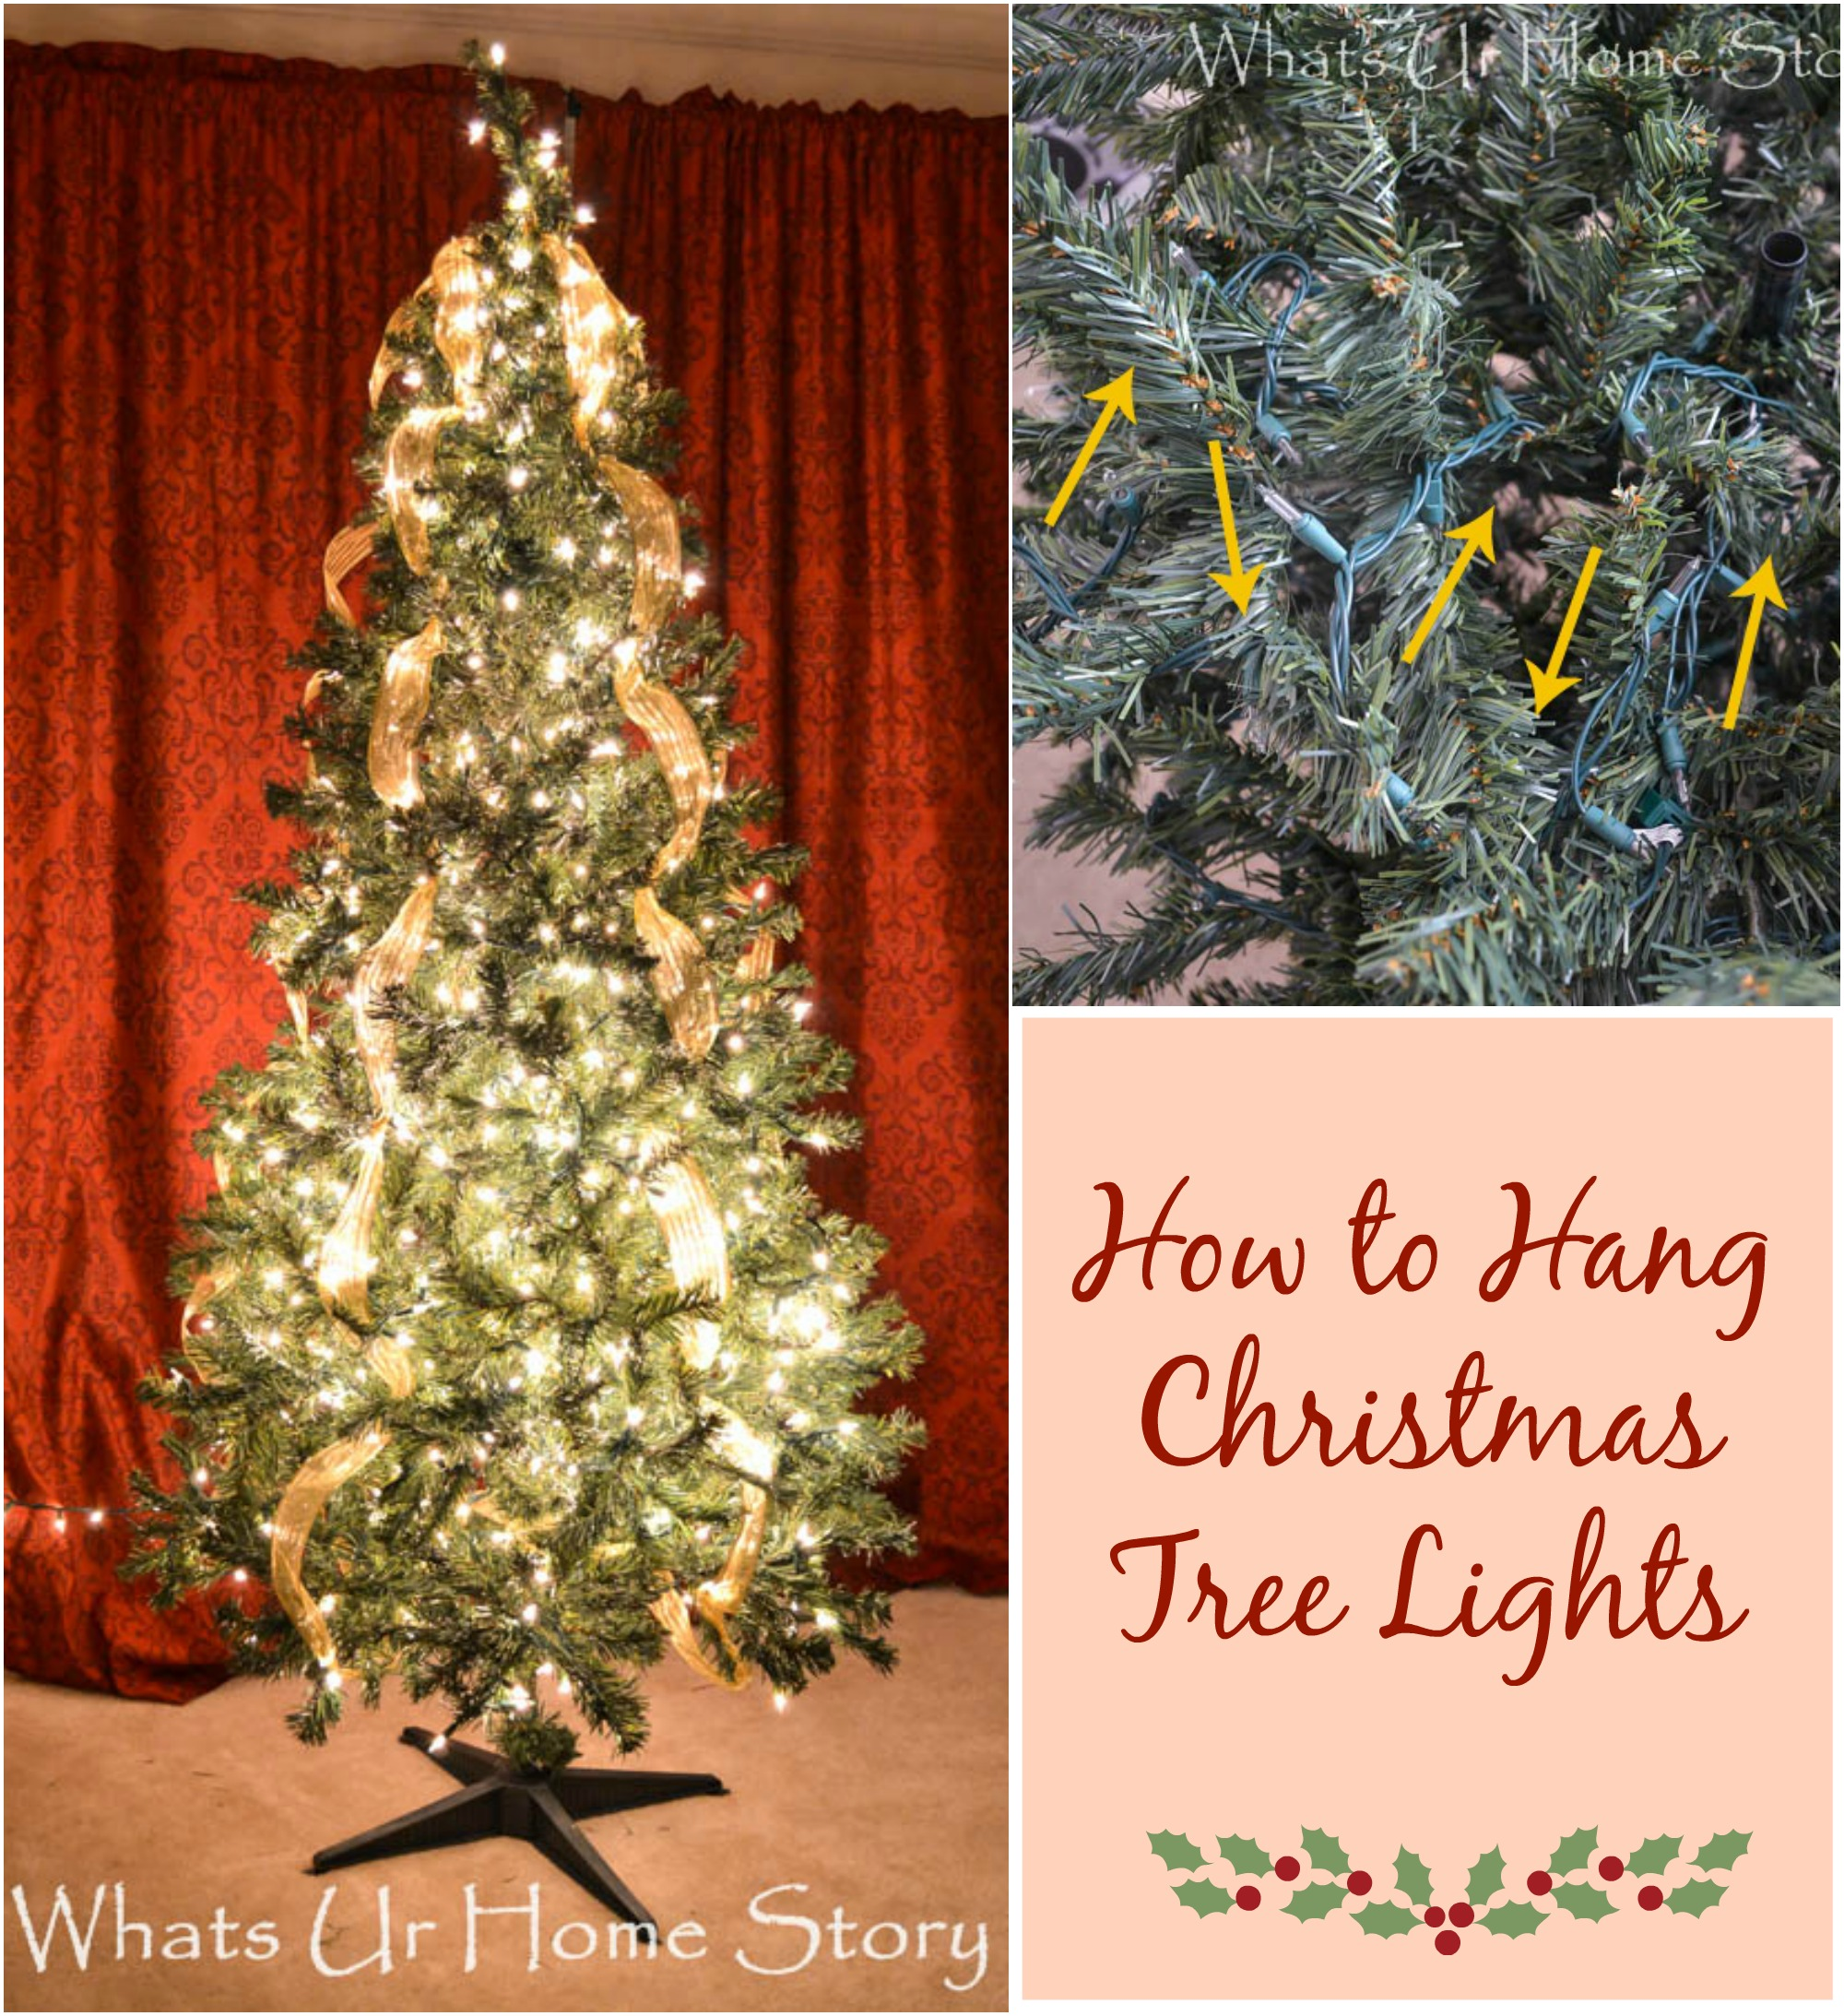 How to Hang Christmas Tree Lights - Whats Ur Home Story